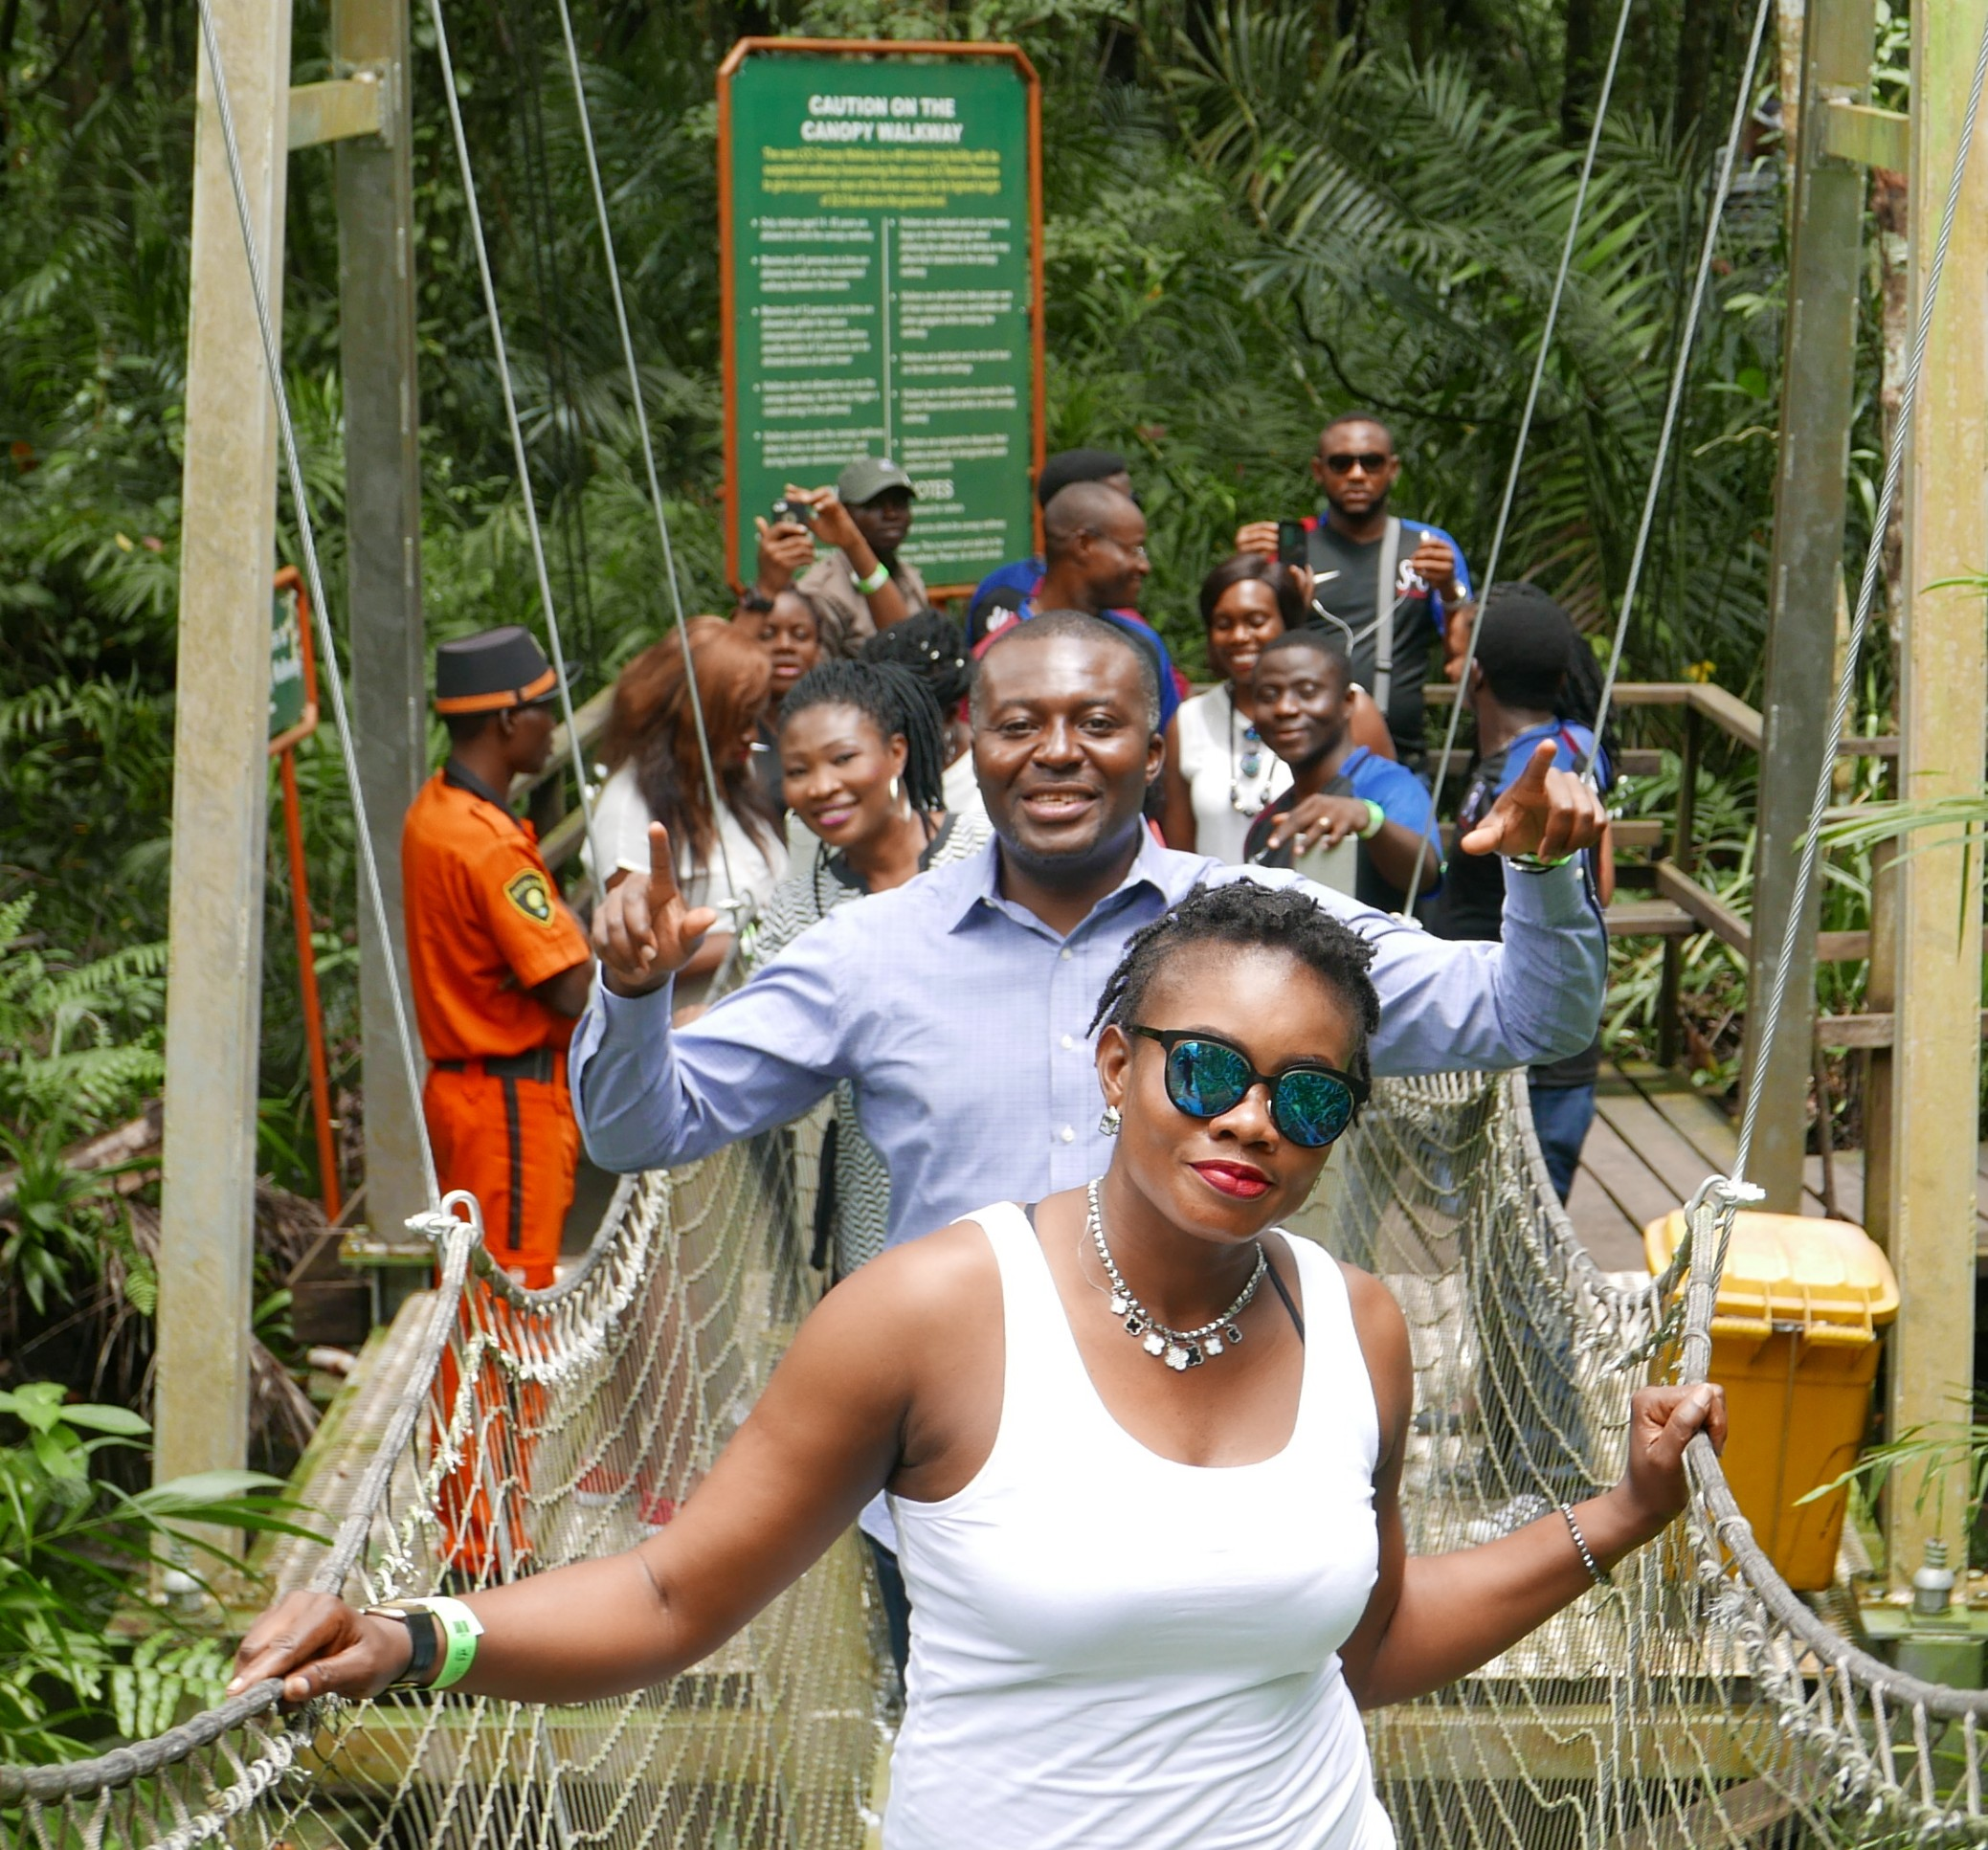 At the Lekki conservation centre with the crew